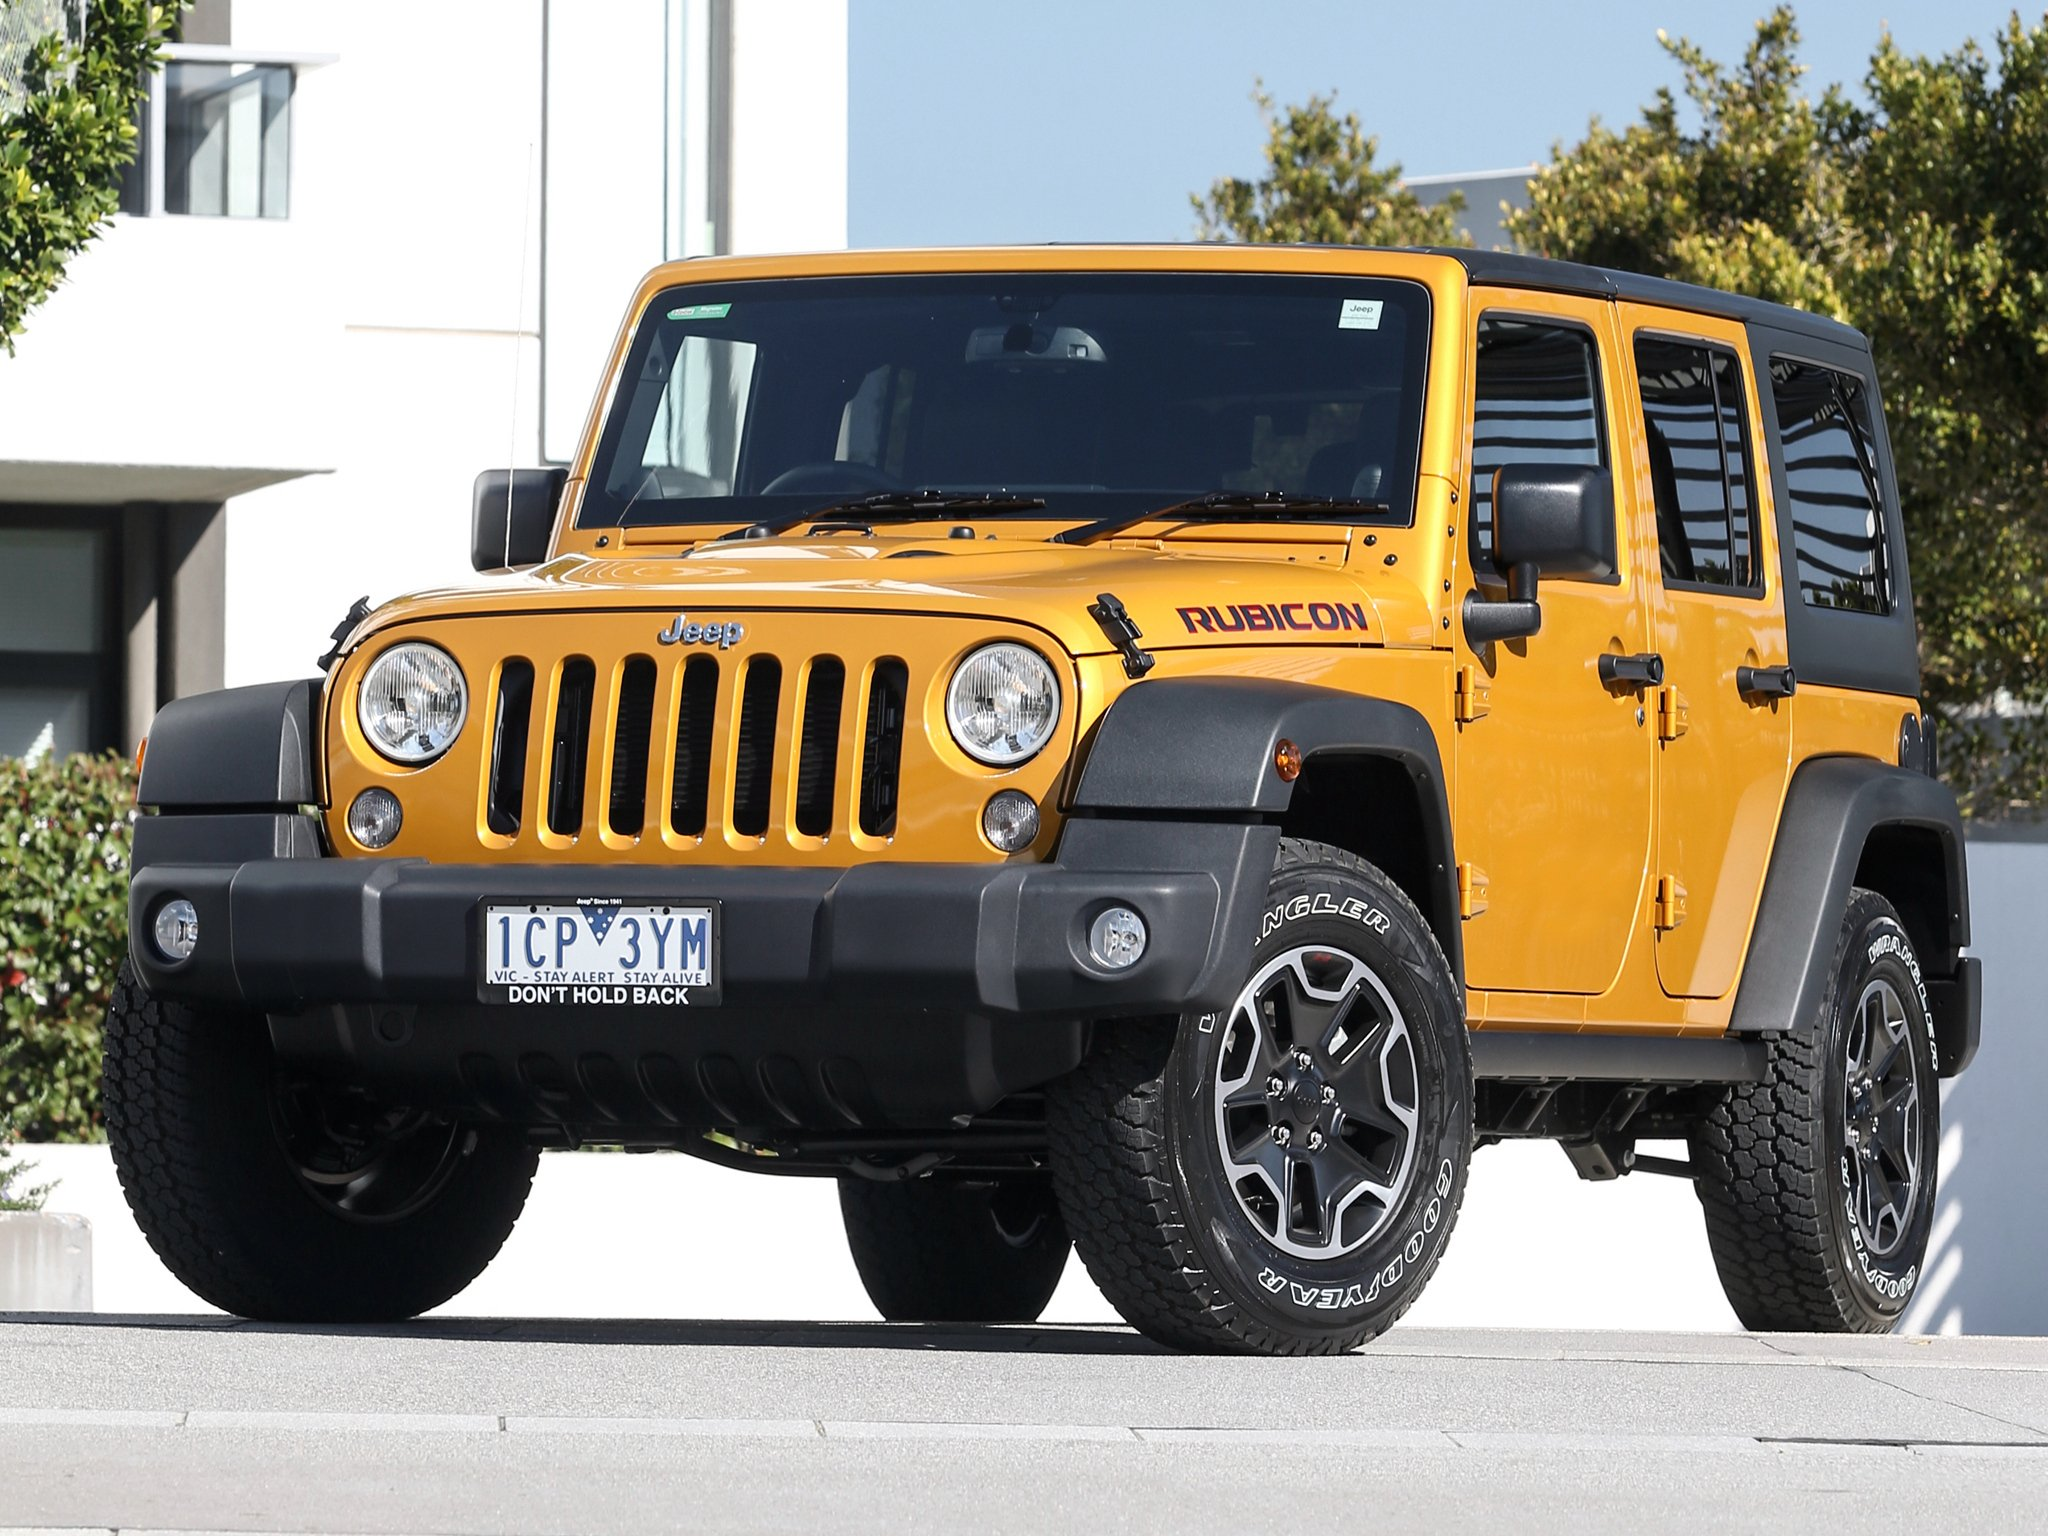 2015 Jeep Wrangler Unlimited Rubicon X Au Spec J K 4x4 Suv Pick Up Specs Wallpaper 2048x1536 449798 Wallpaperup